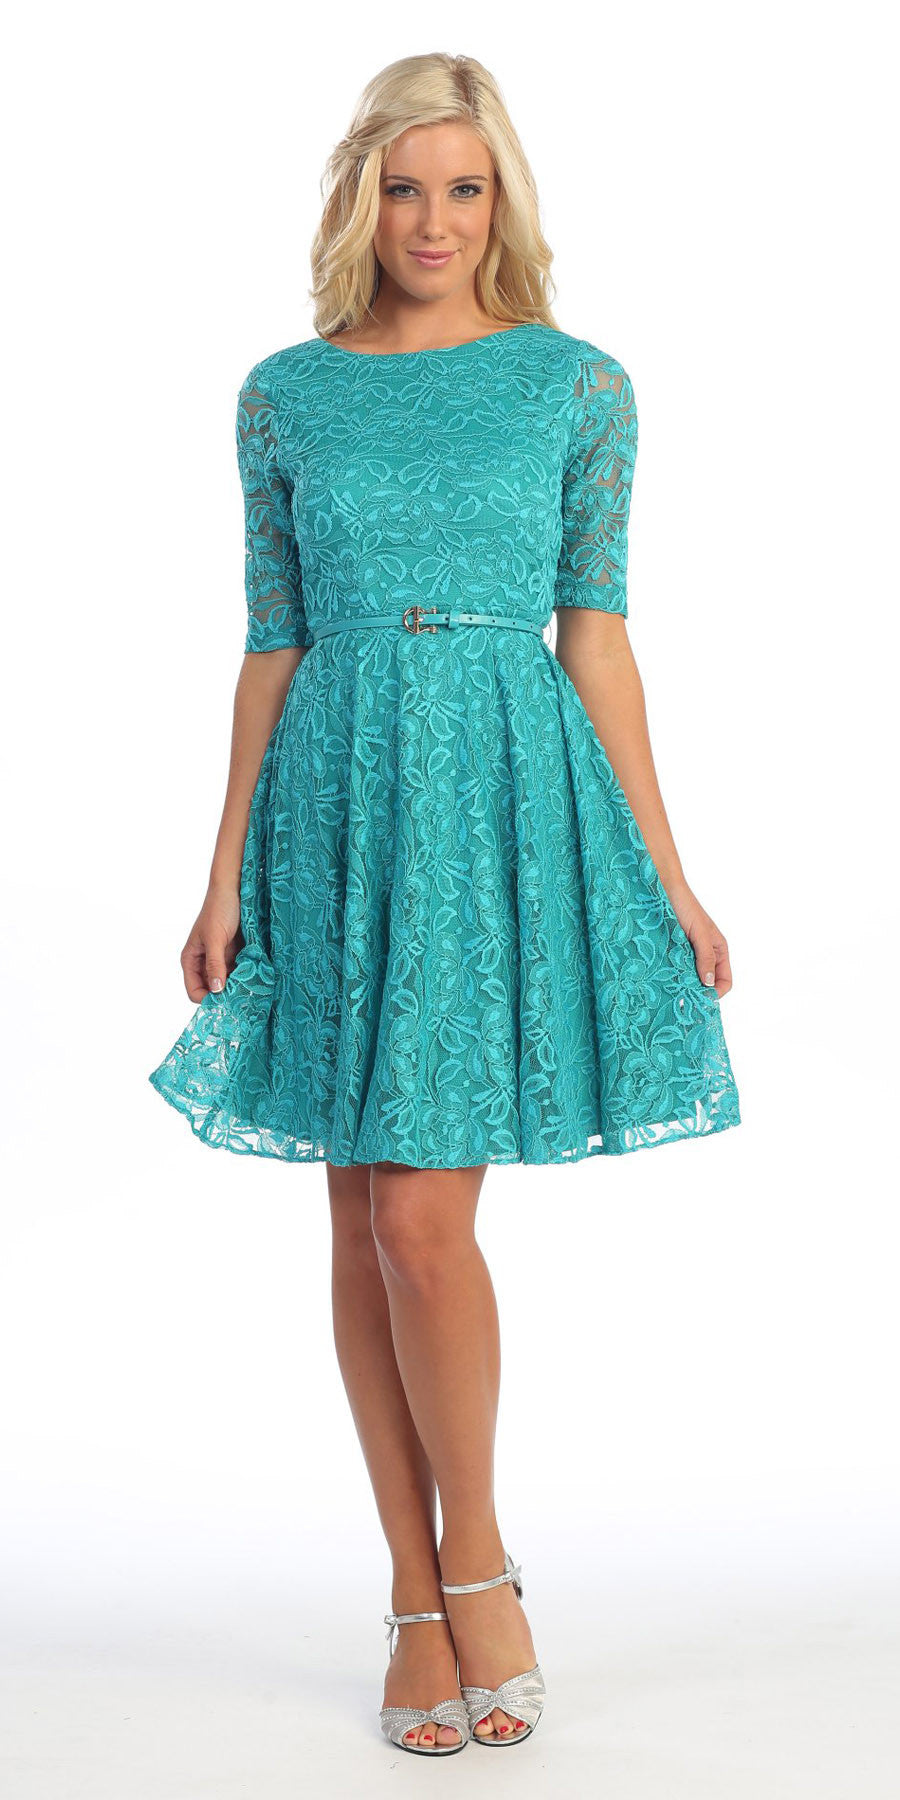 Green lace dresses with sleeves